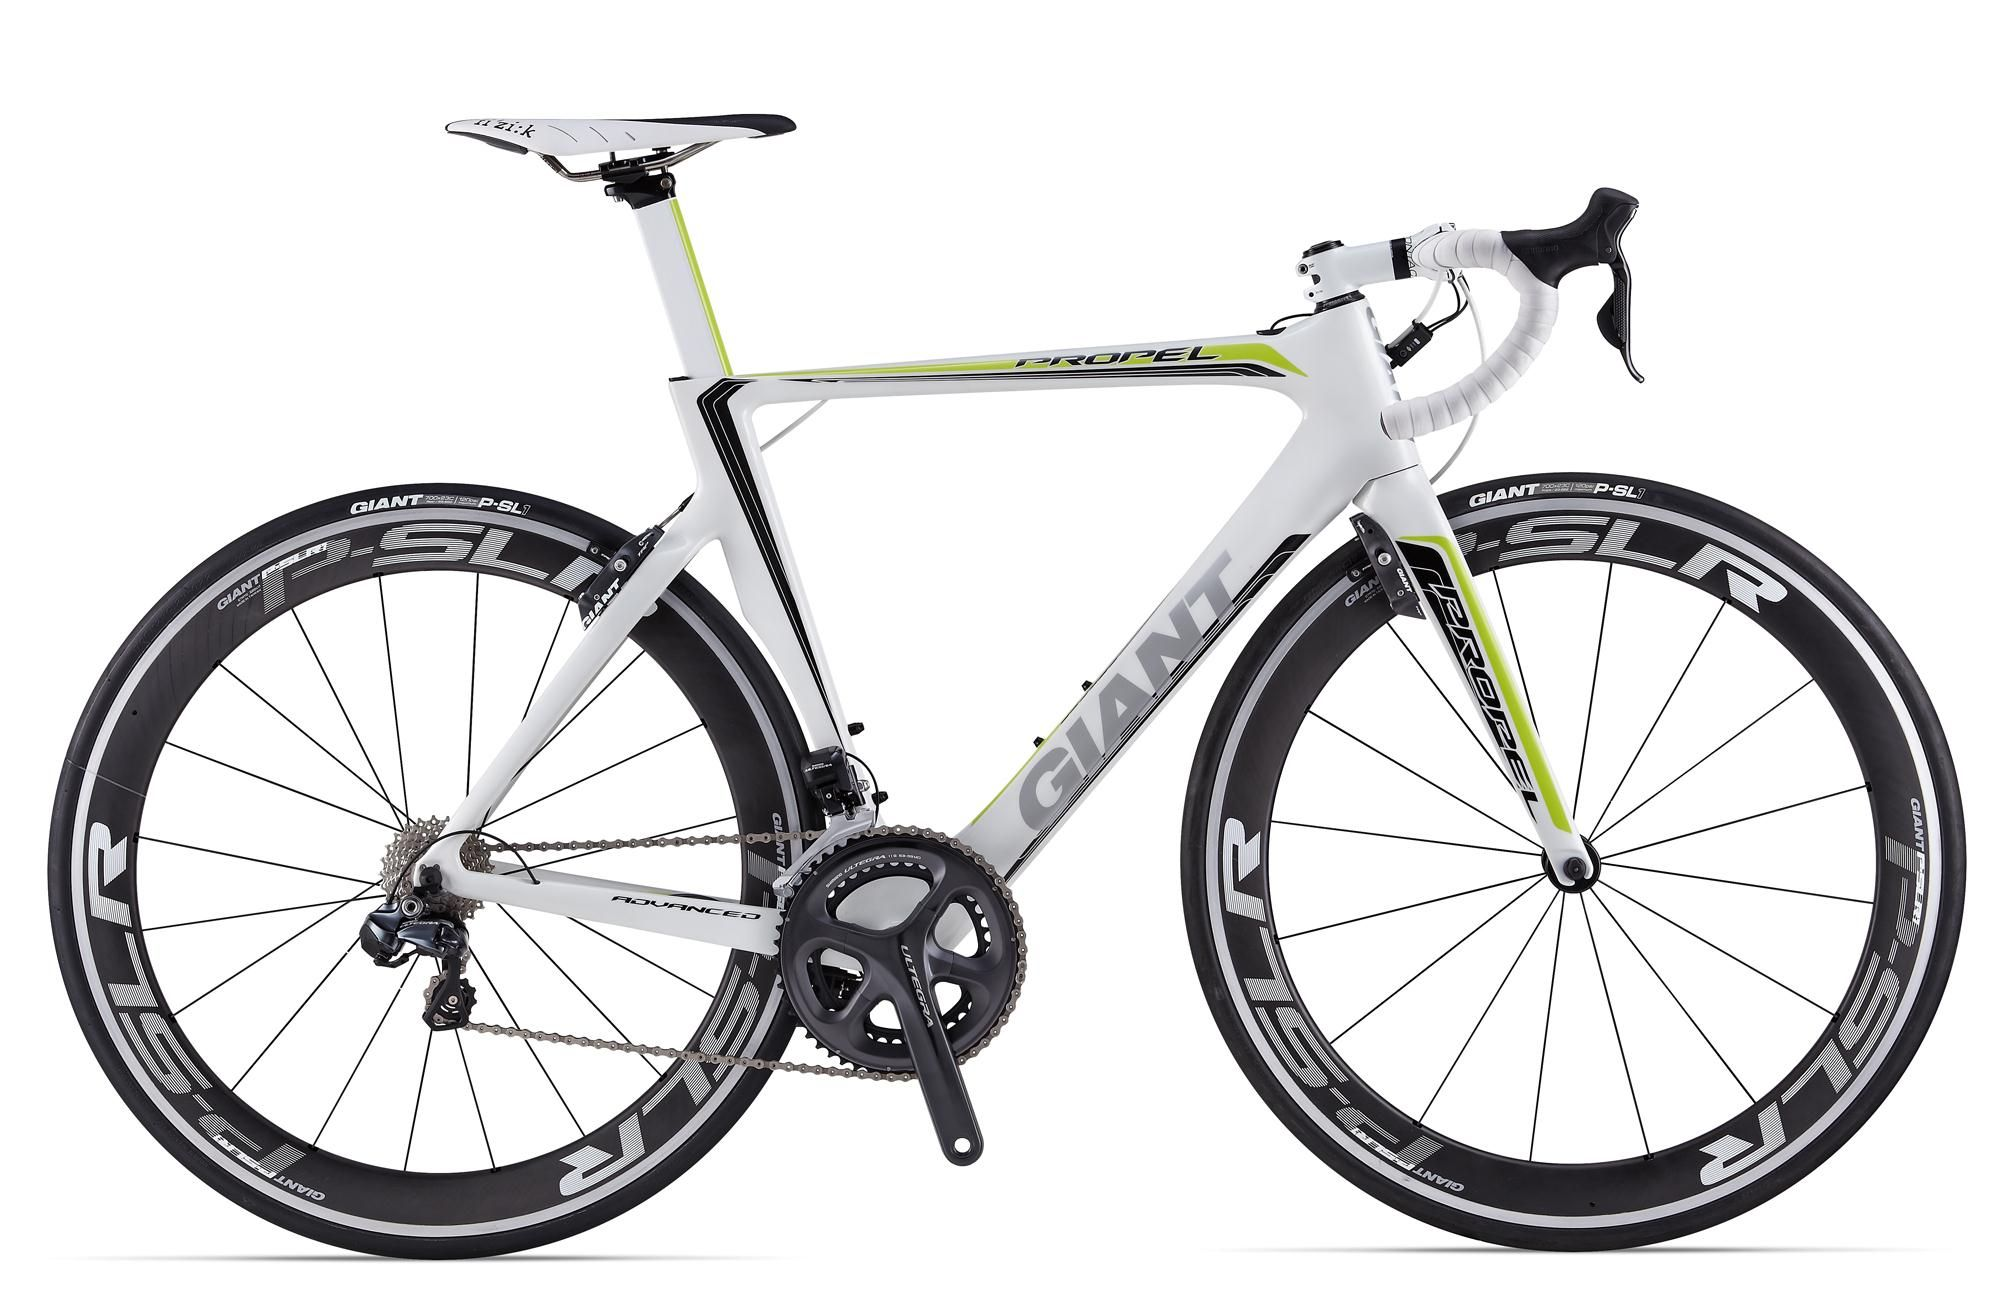 Шоссейный велосипед Giant Propel Advanced 1 2014 в Тюмени